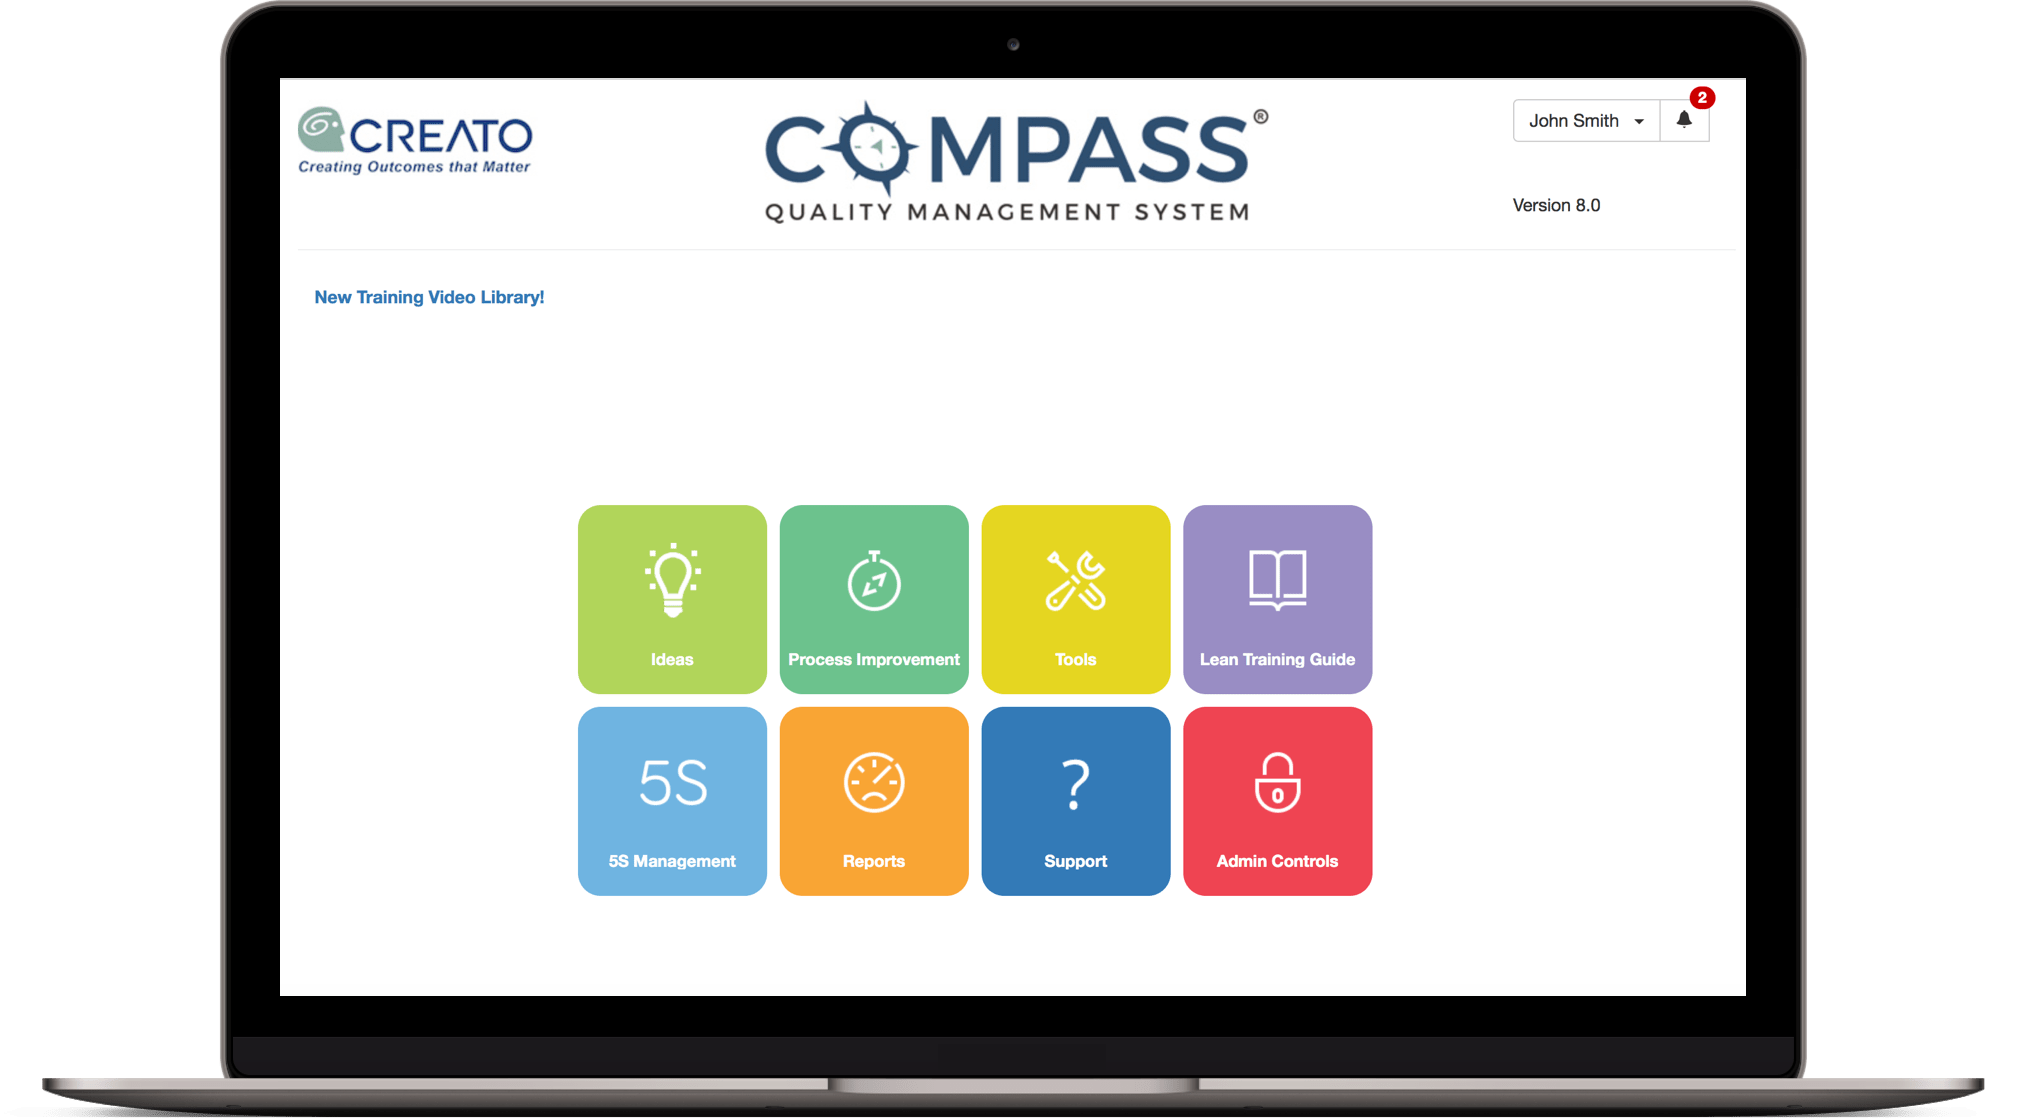 Screenshot of Compass Quality Management System welcome screen